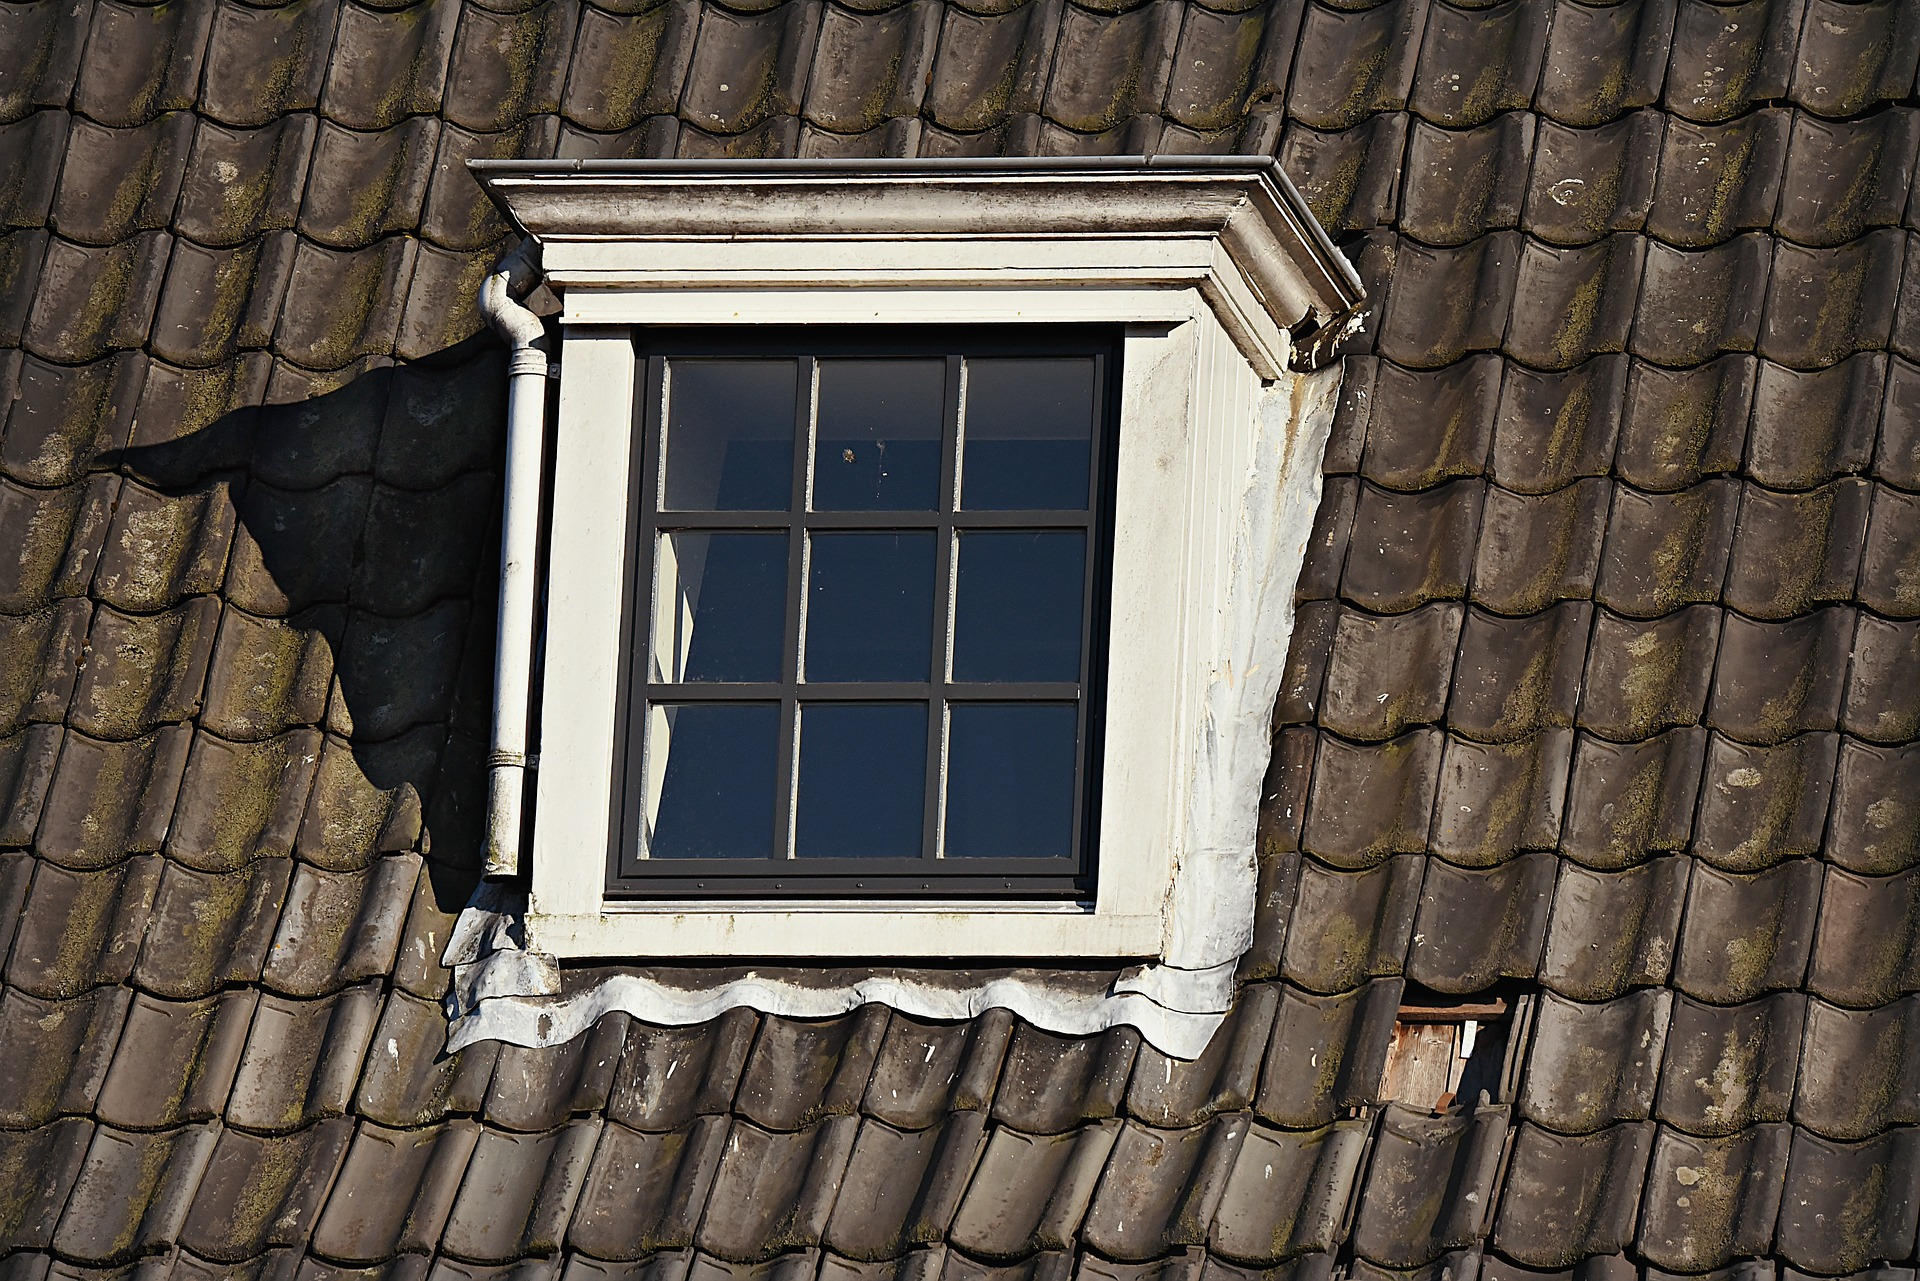 An image of roof shingles and a window.